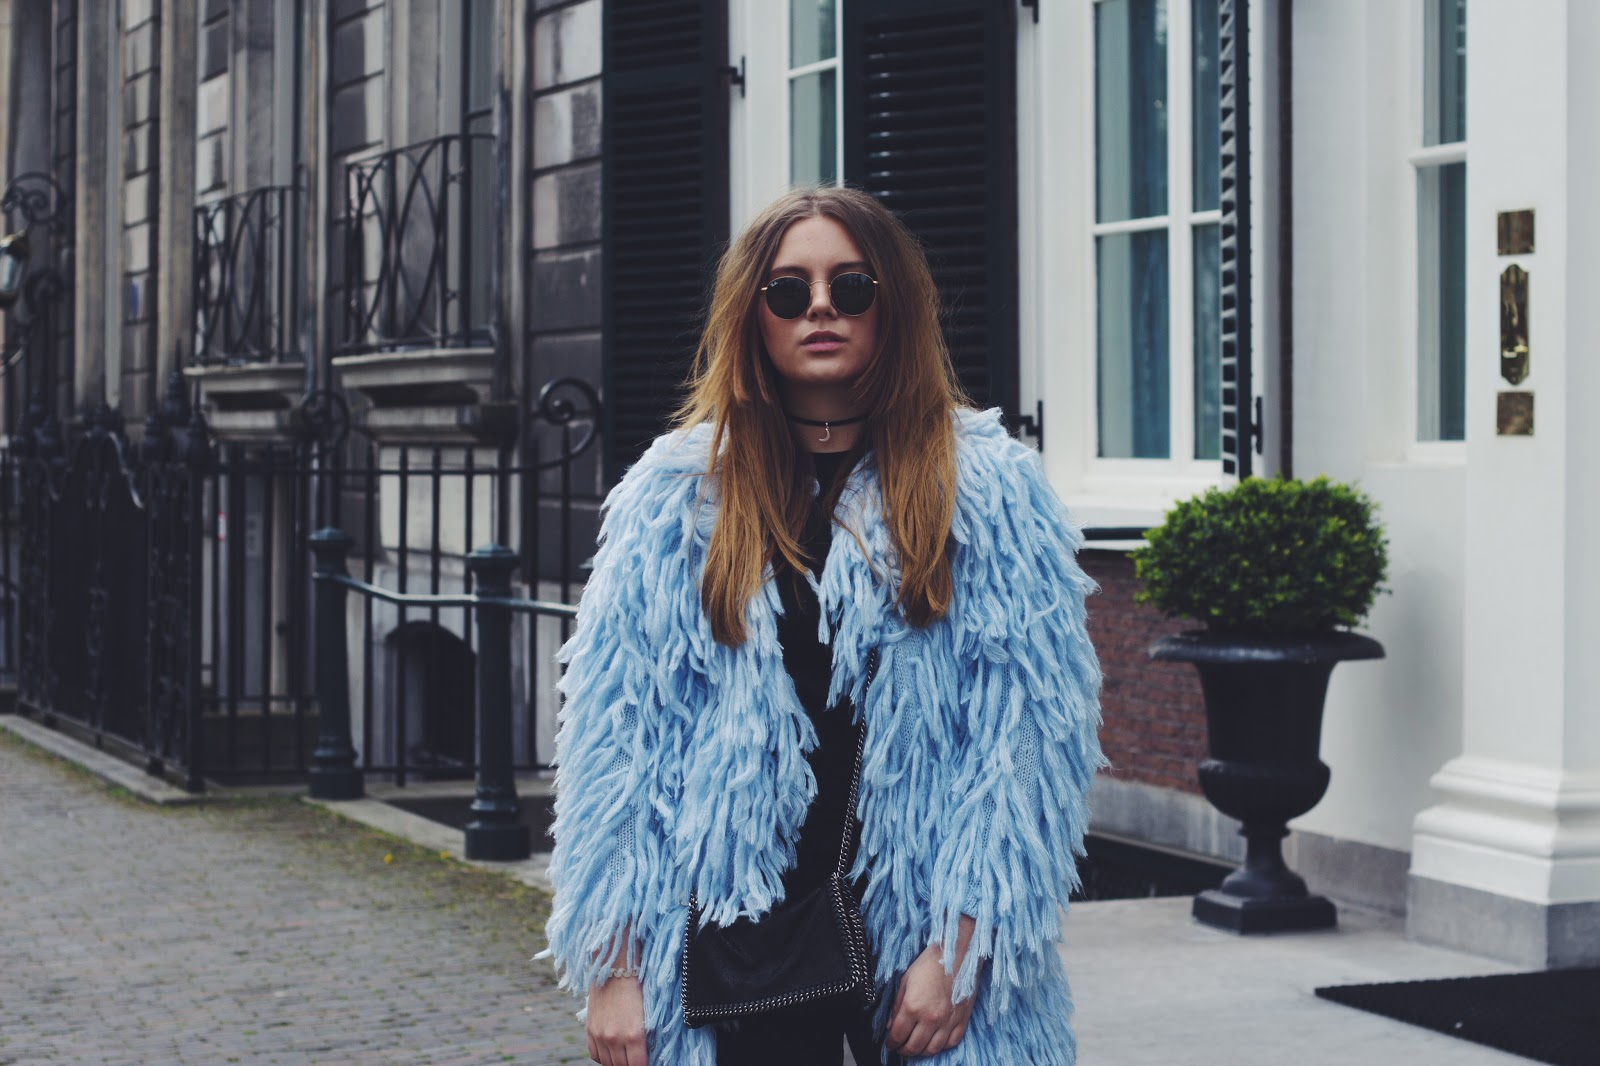 blog, blogger, dominique, candido, fashion, mode, ray ban, j brand, the lovers & drifters club, asos, bebold, isabel marant, shoes, choker, shag, sunglasses, outfit, post, stella mccartney, bag